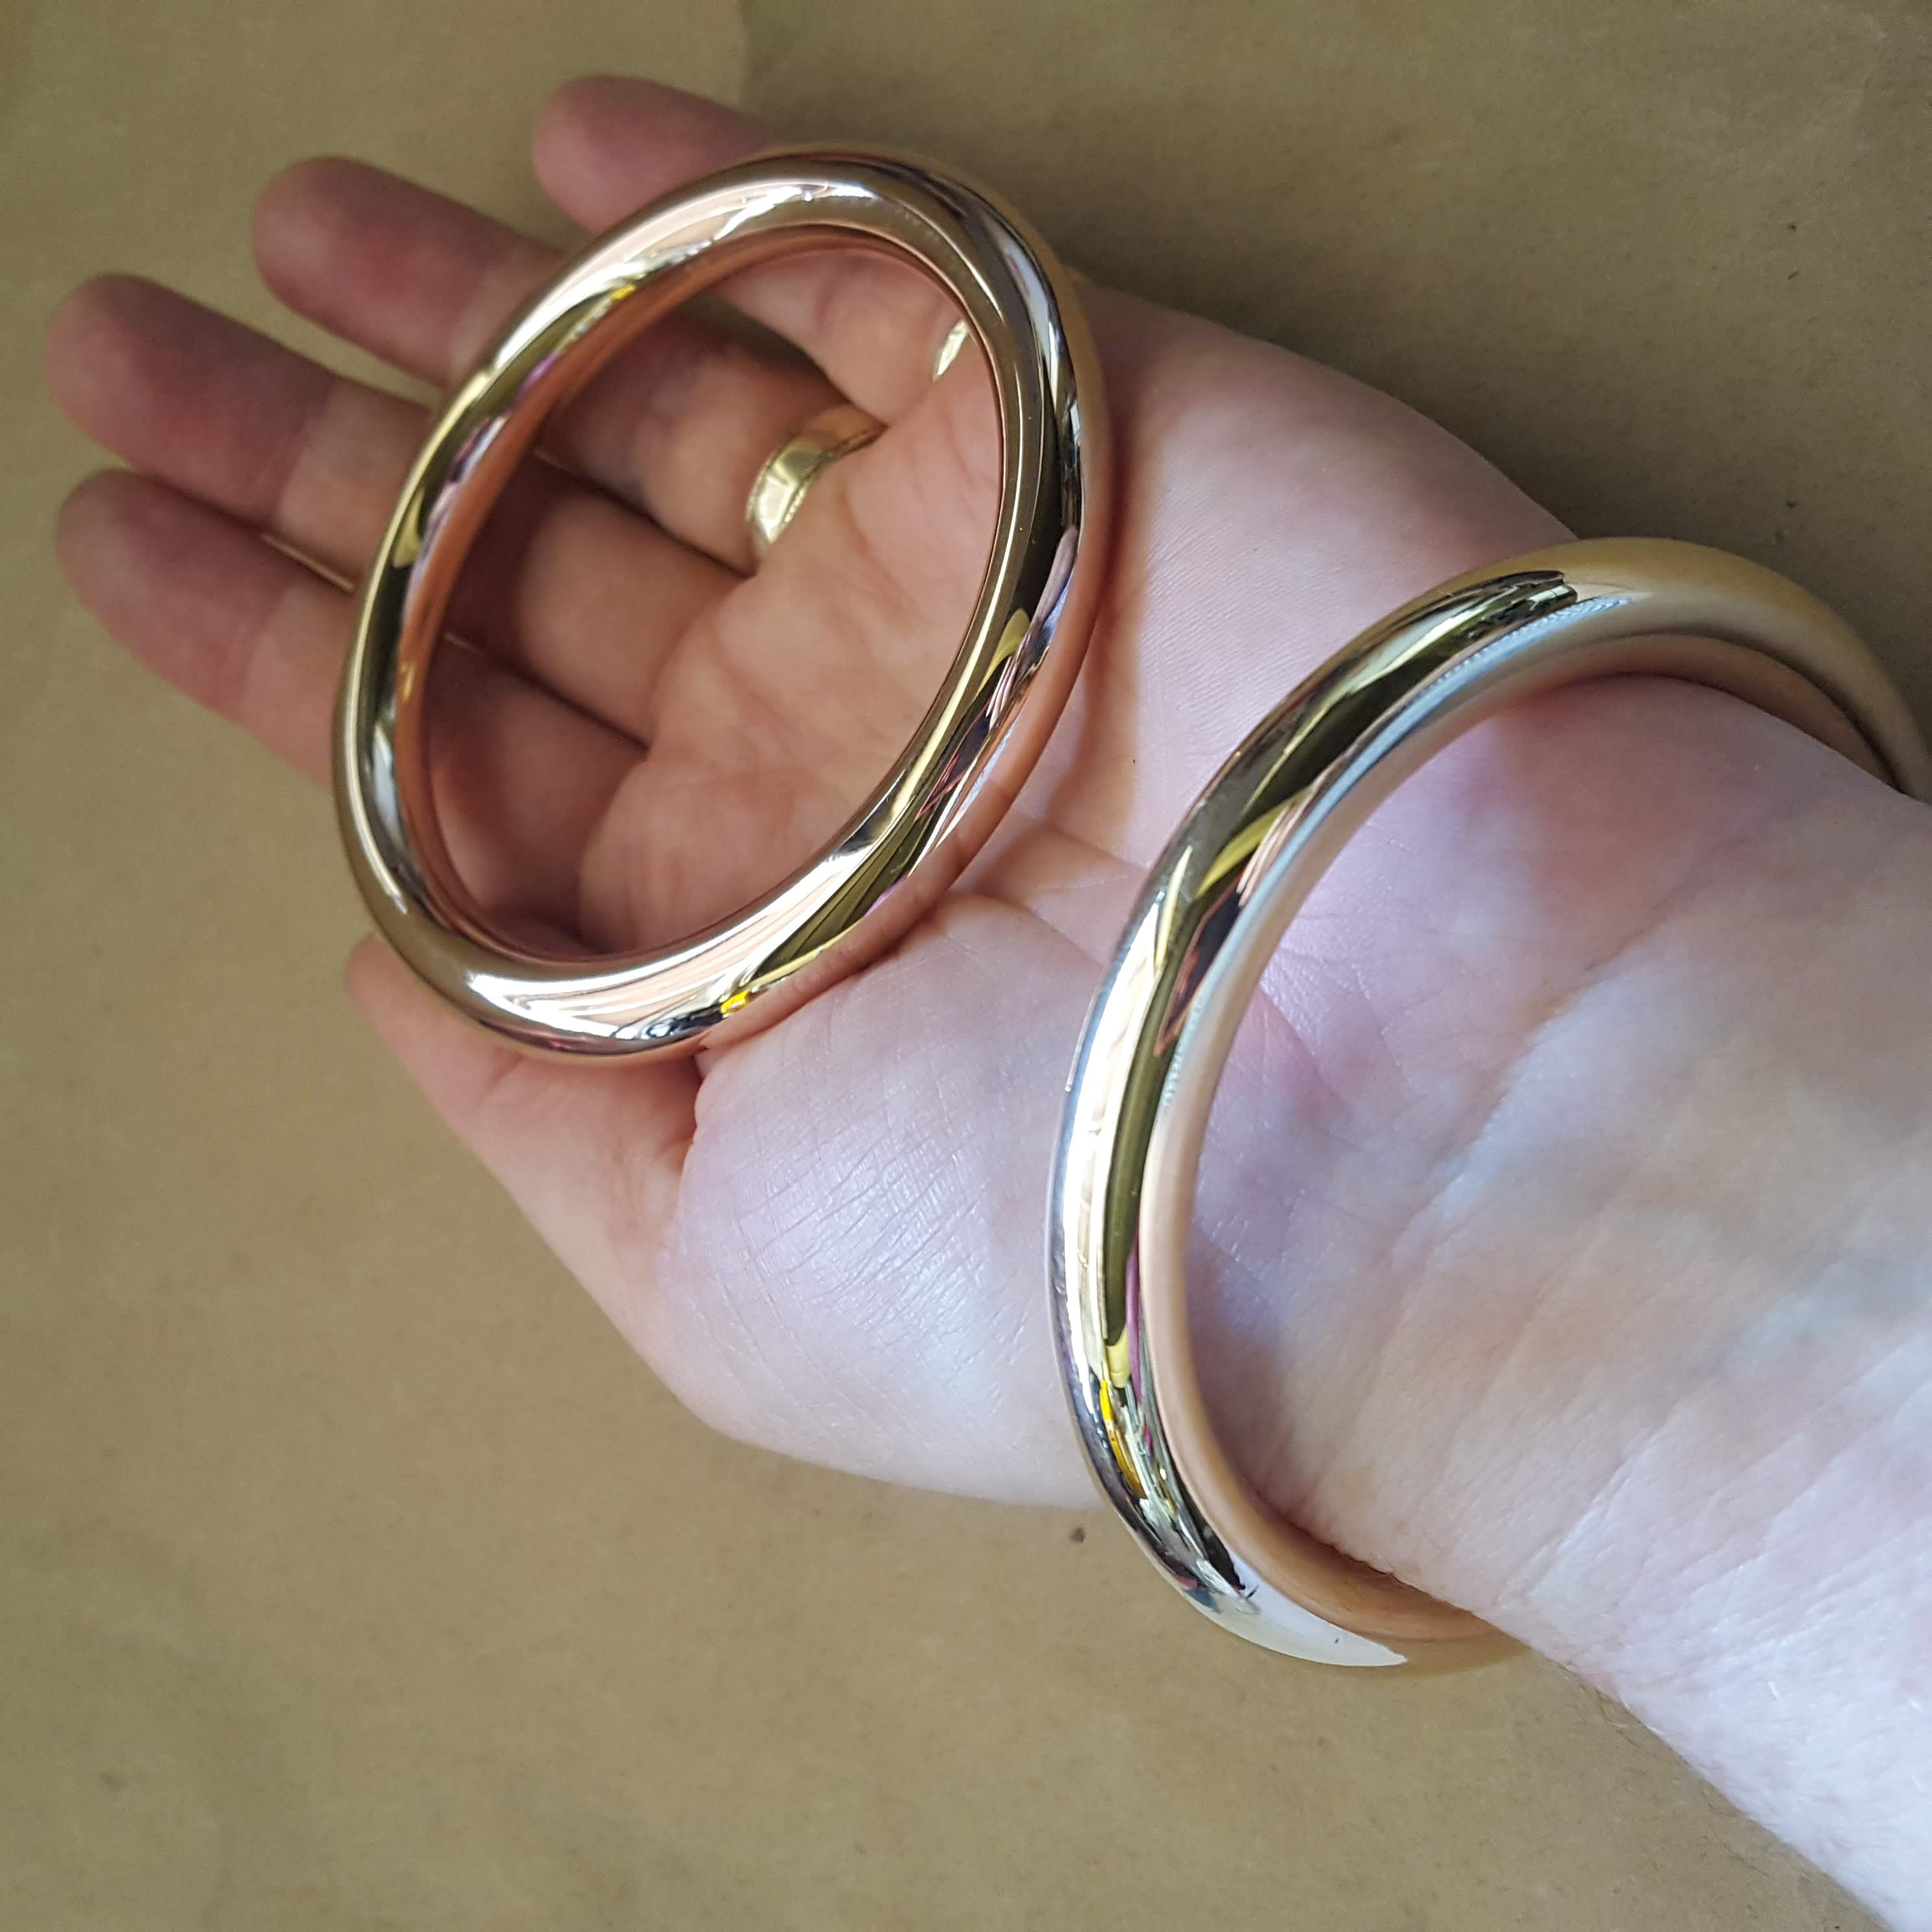 gold bangles in hand